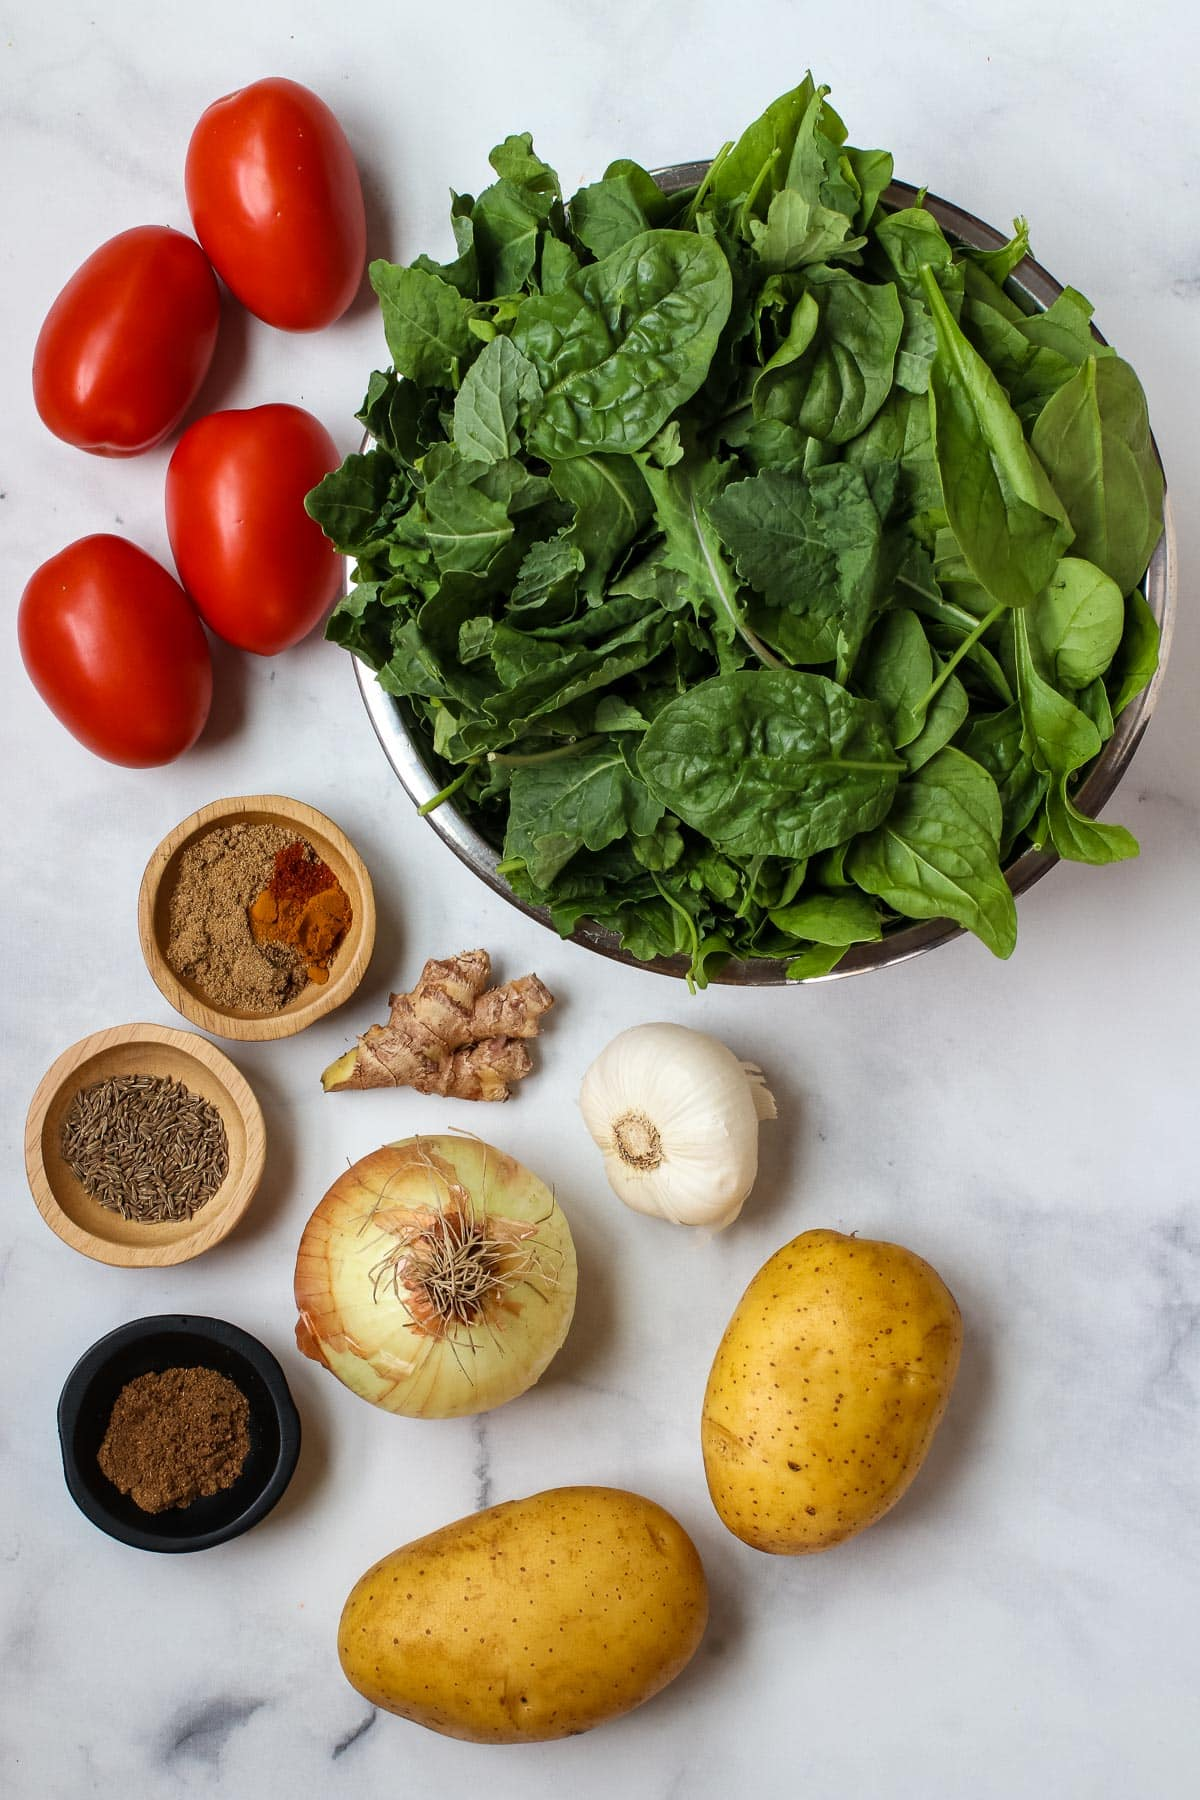 Spinach Potato Curry ingredients: spinach, tomatoes, potatoes, onion, garlic, ginger and spices.